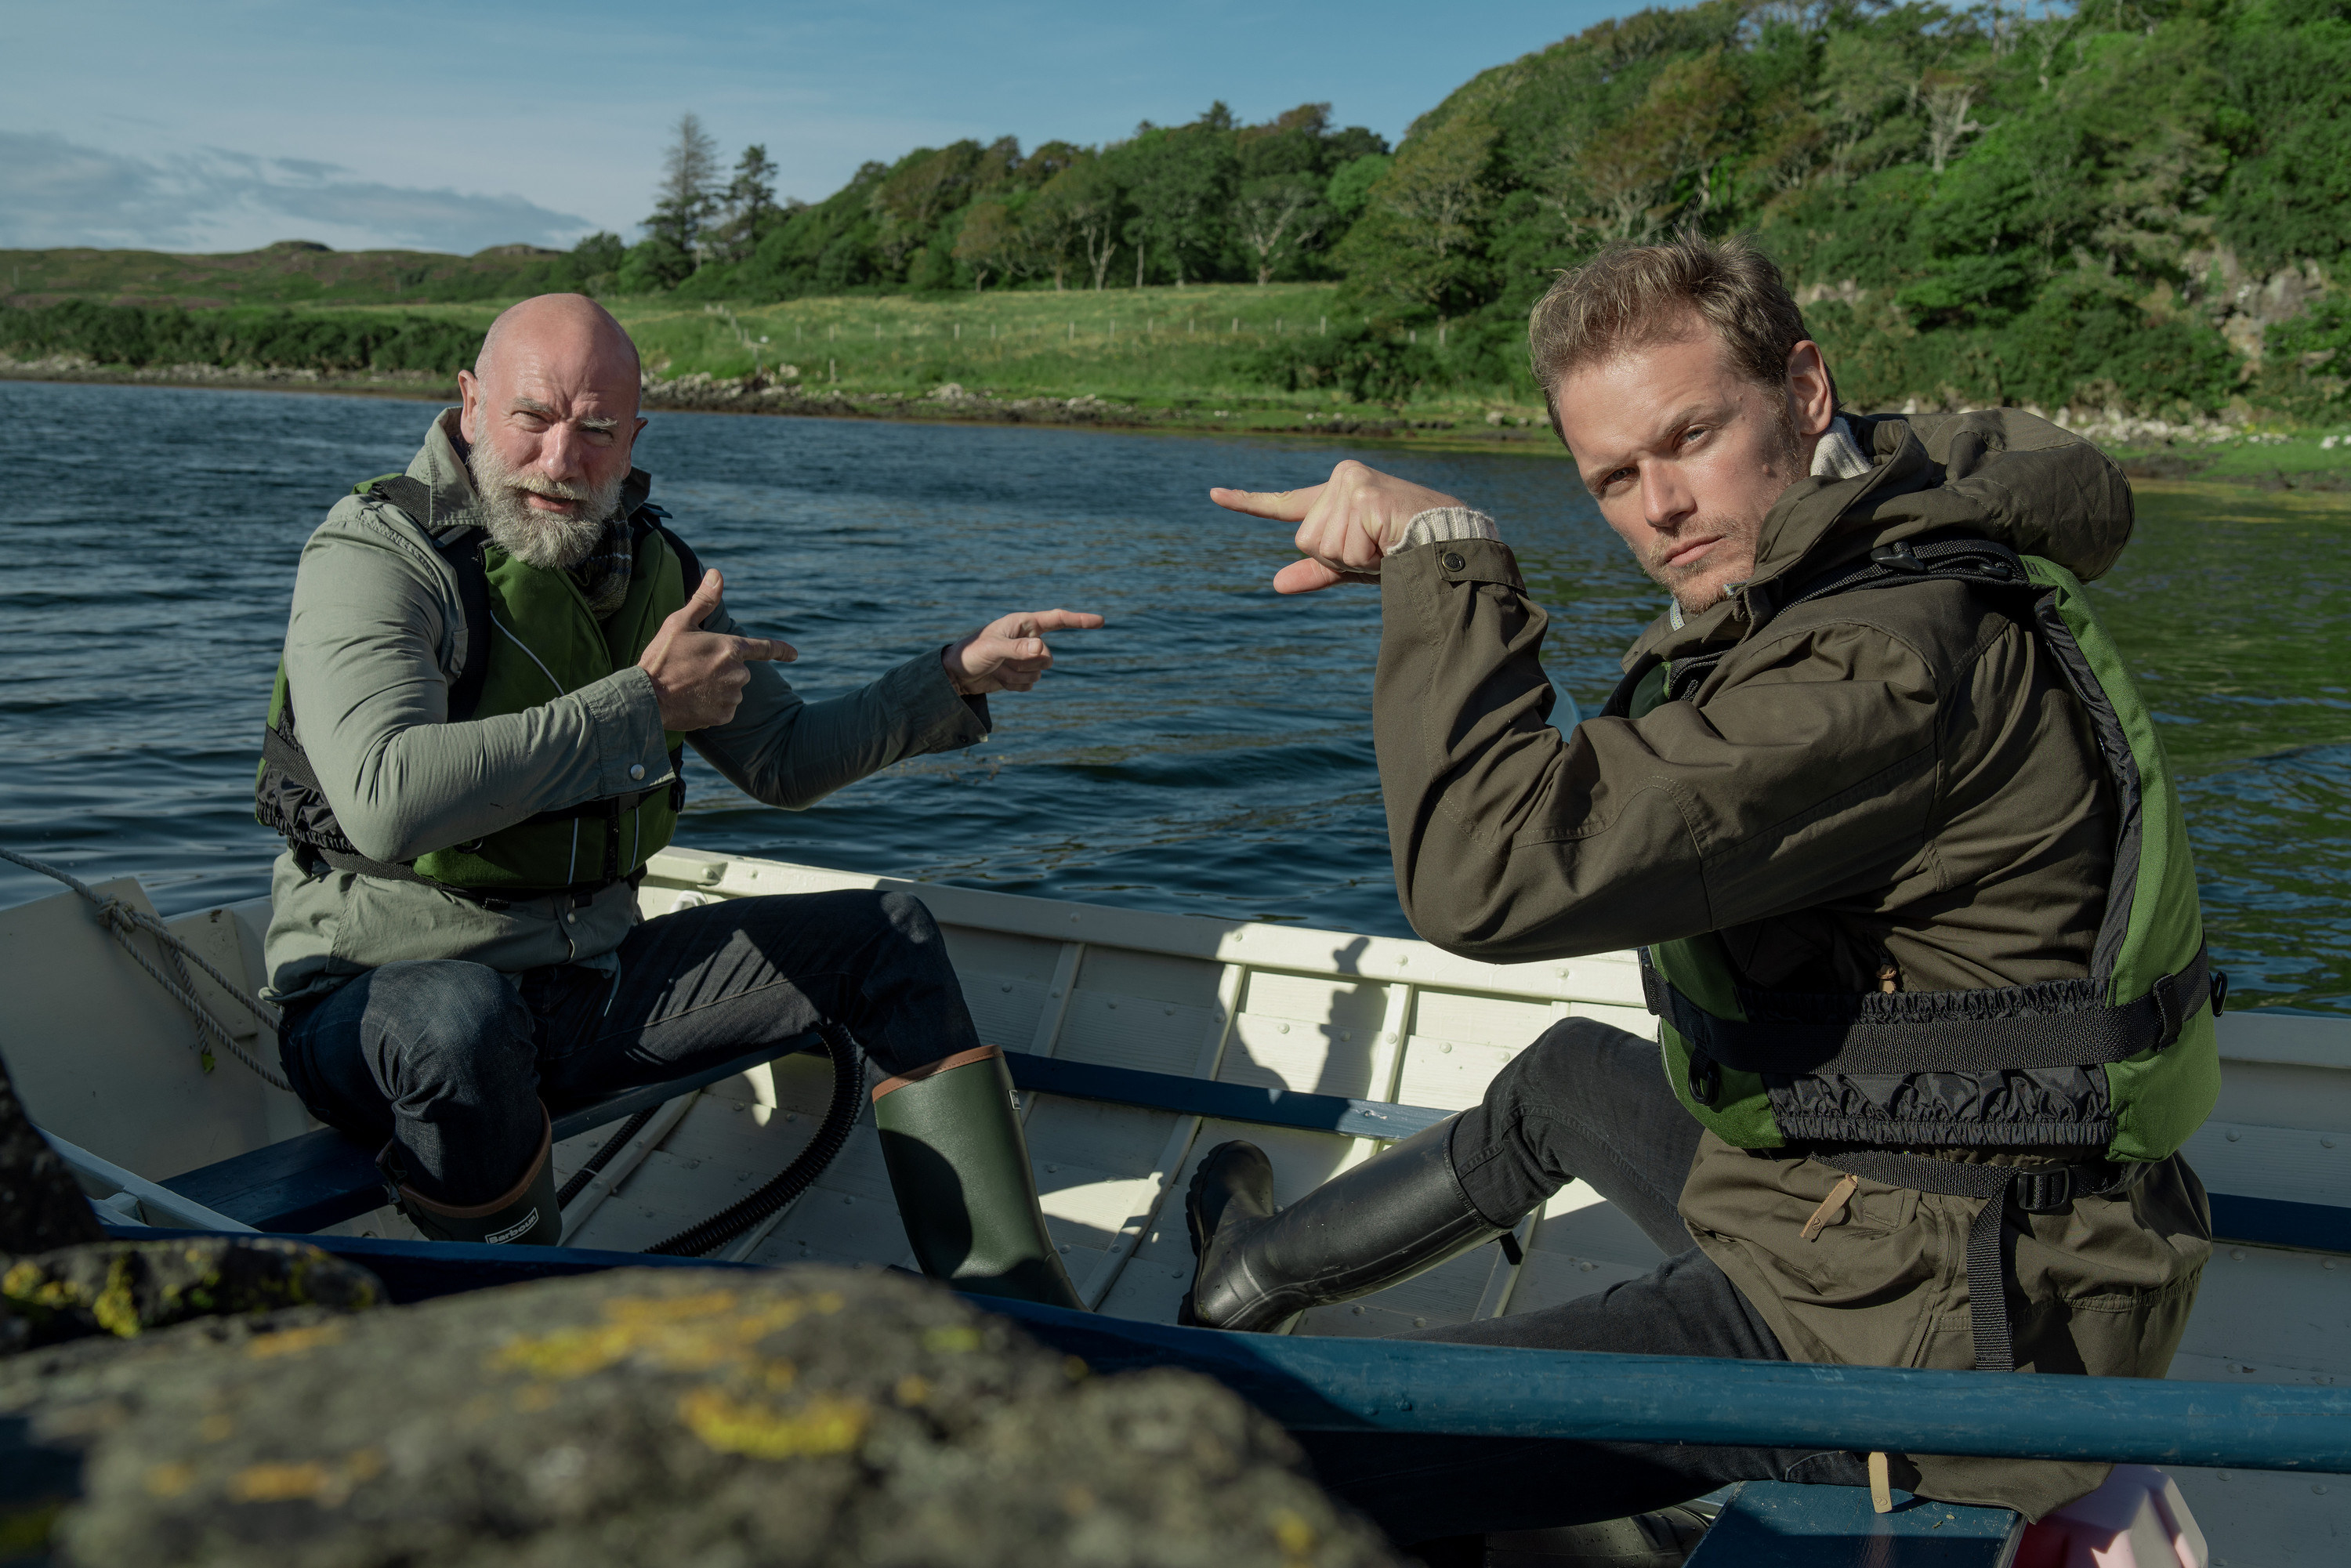 Sam and Graham pointing at one another while sitting in a boat